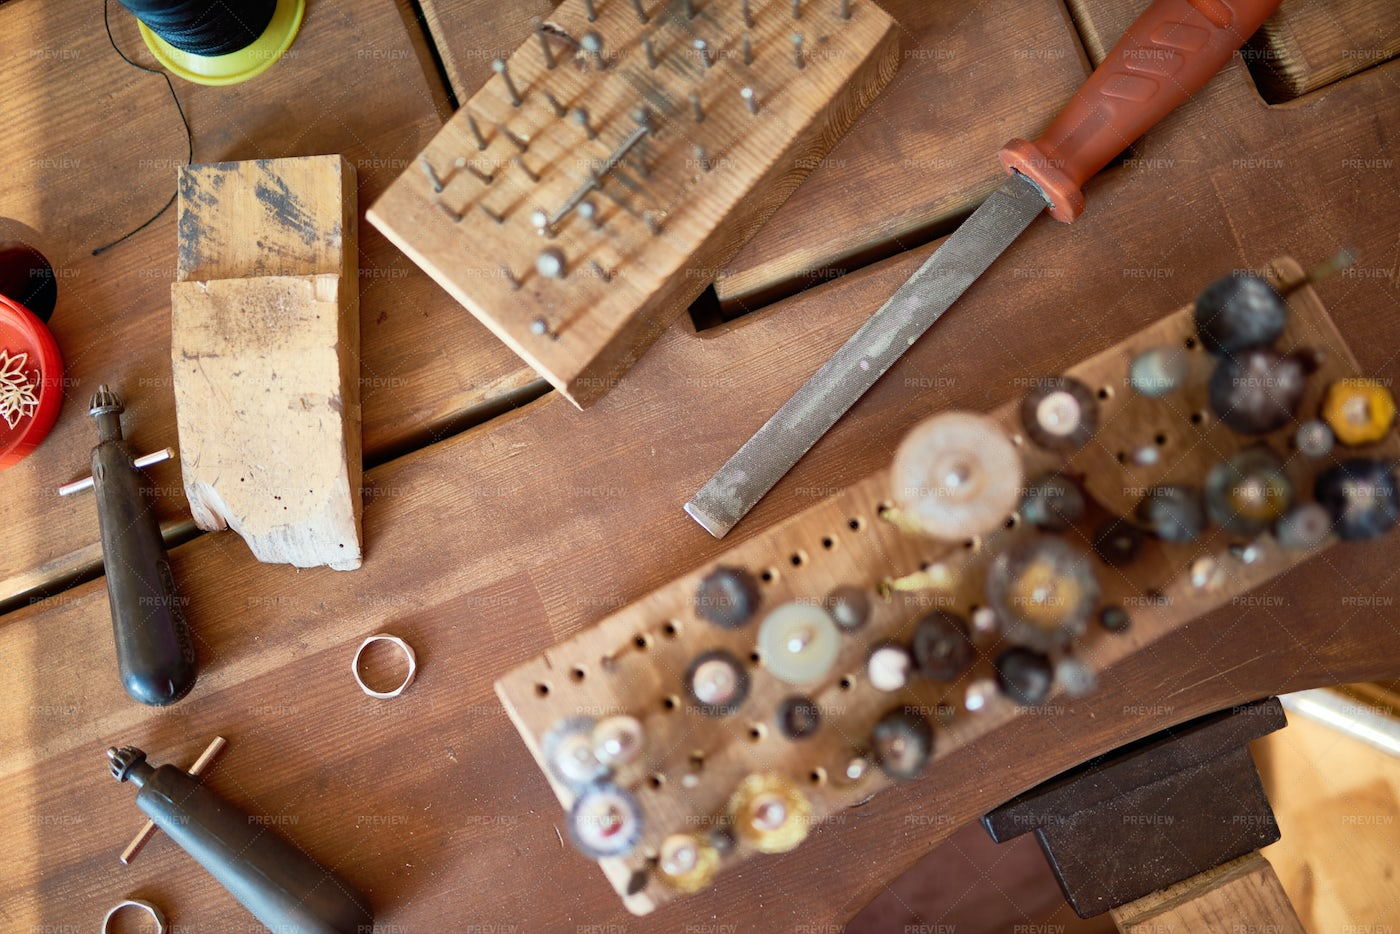 Jewelers Tools On Table: Stock Photos